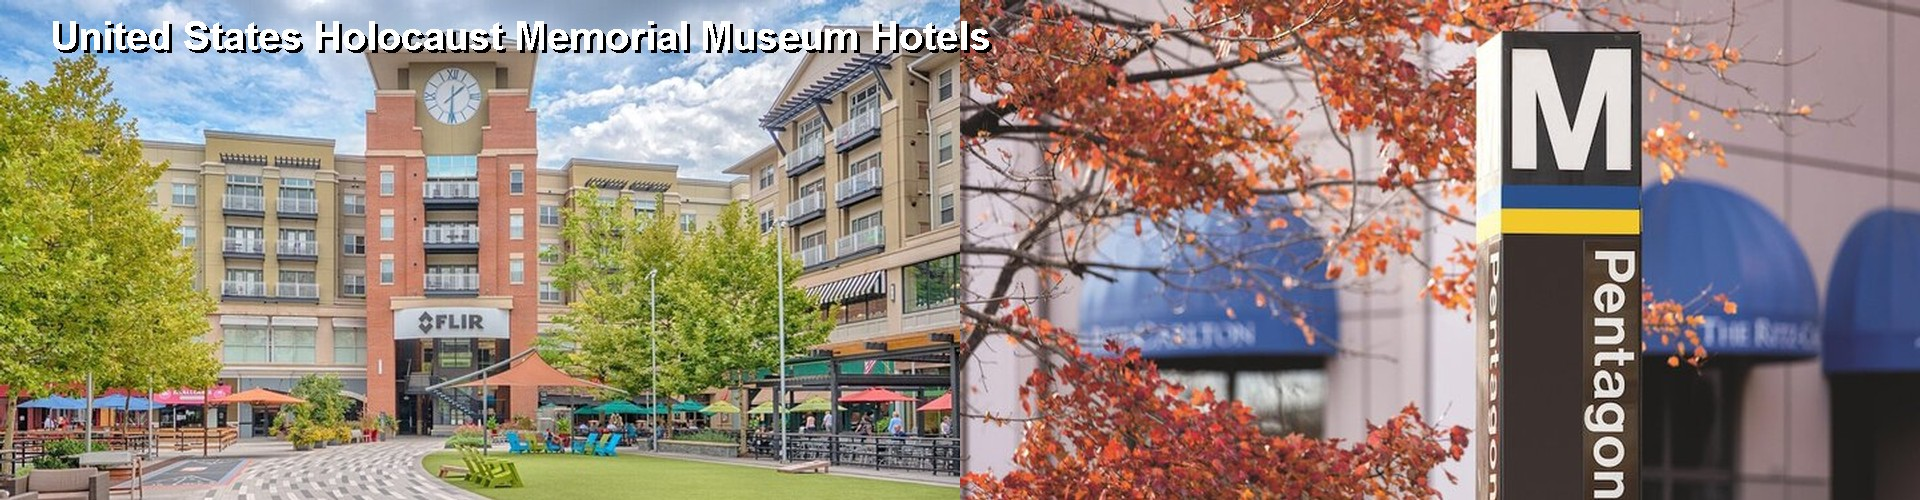 5 Best Hotels near United States Holocaust Memorial Museum